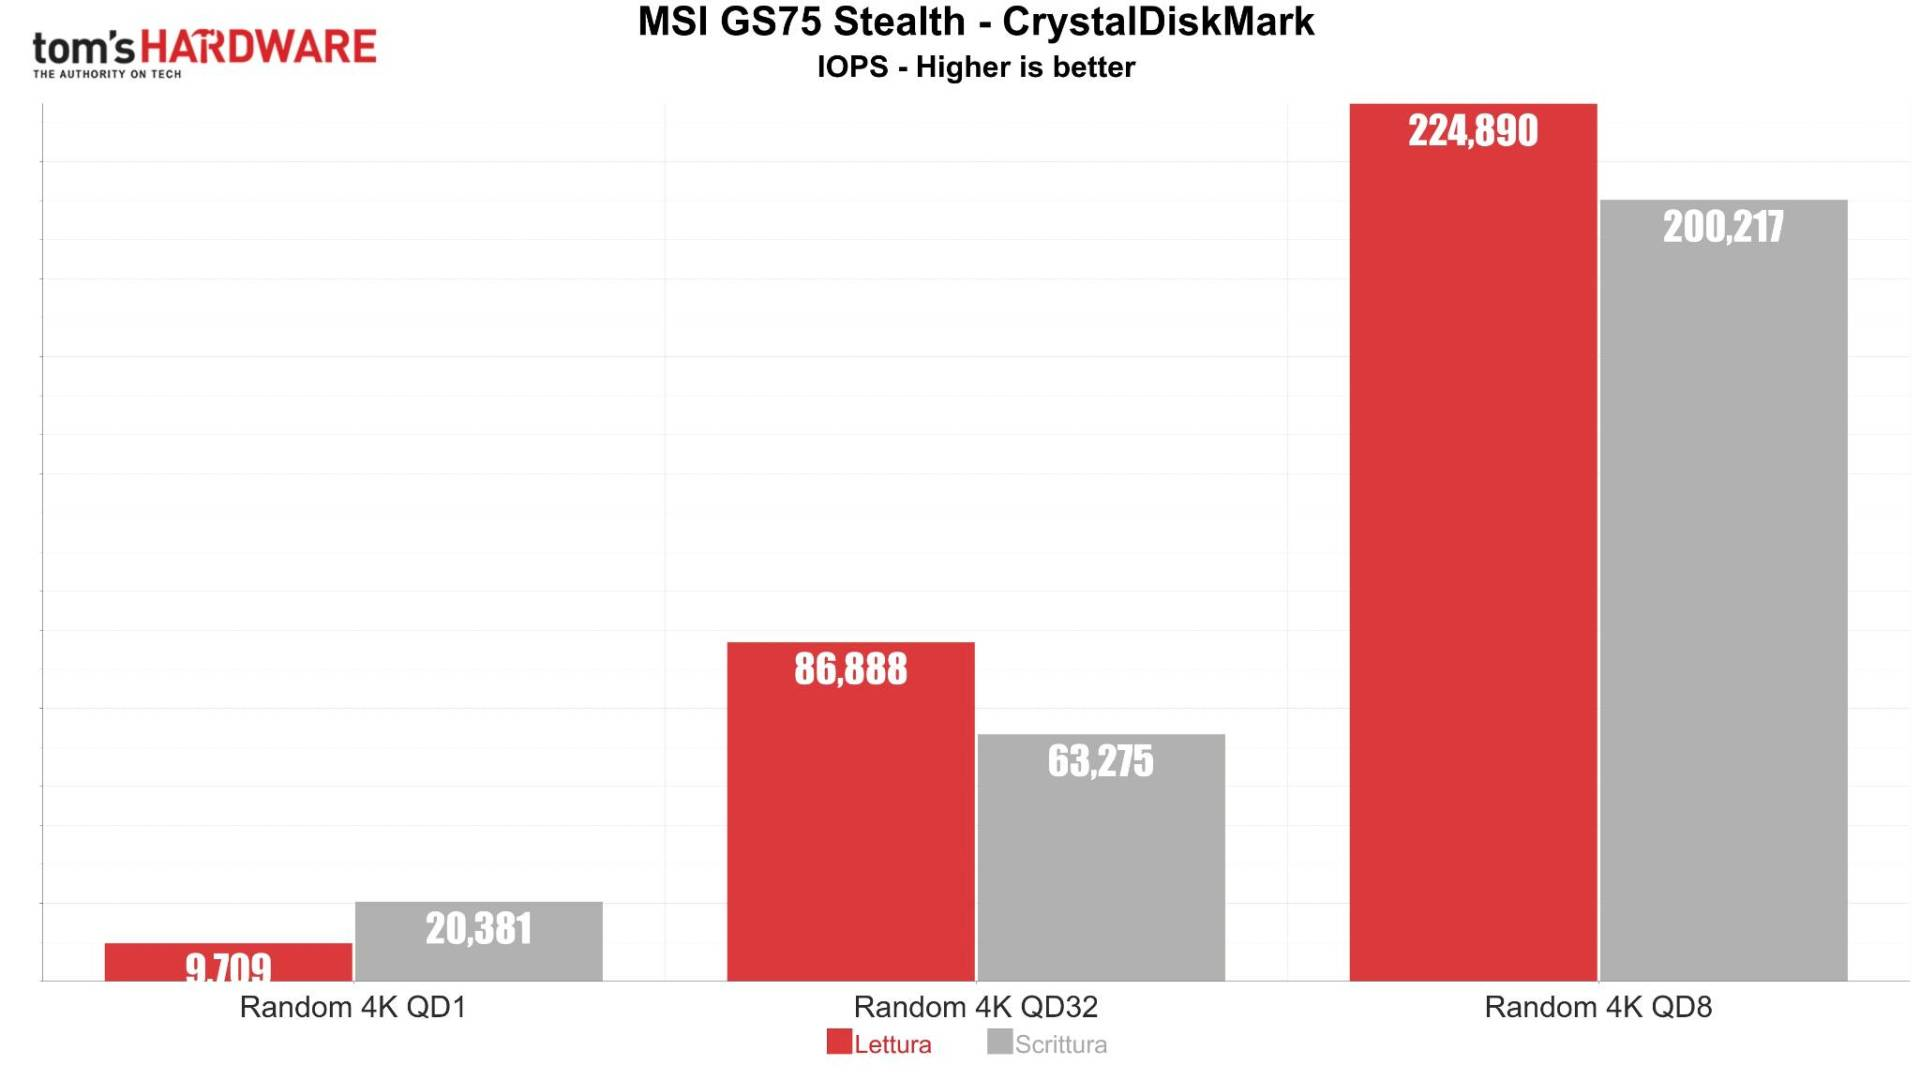 MSI GS75 Stealth CrystalDiskMark